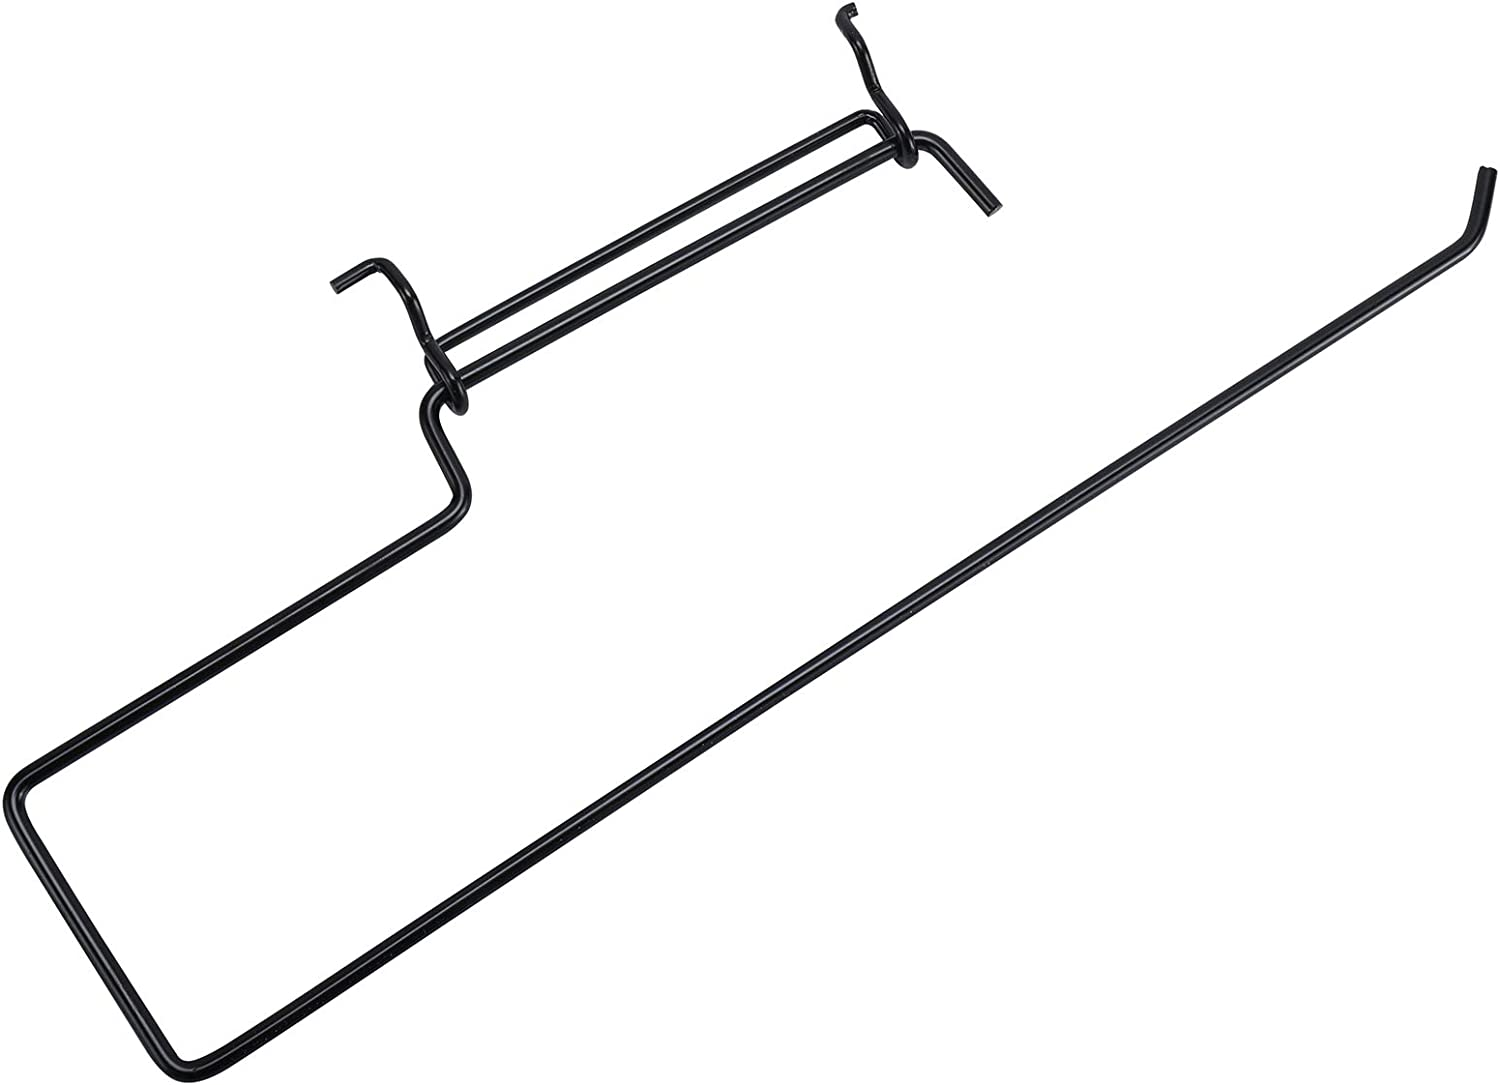 Kitchen Laundry Room Bathroom Stainless Steel Pegboard Hooks Garage Pegboard Organization Accessory Hook for Workshop Toolly 4 Pack Pegboard Paper Towel Holder